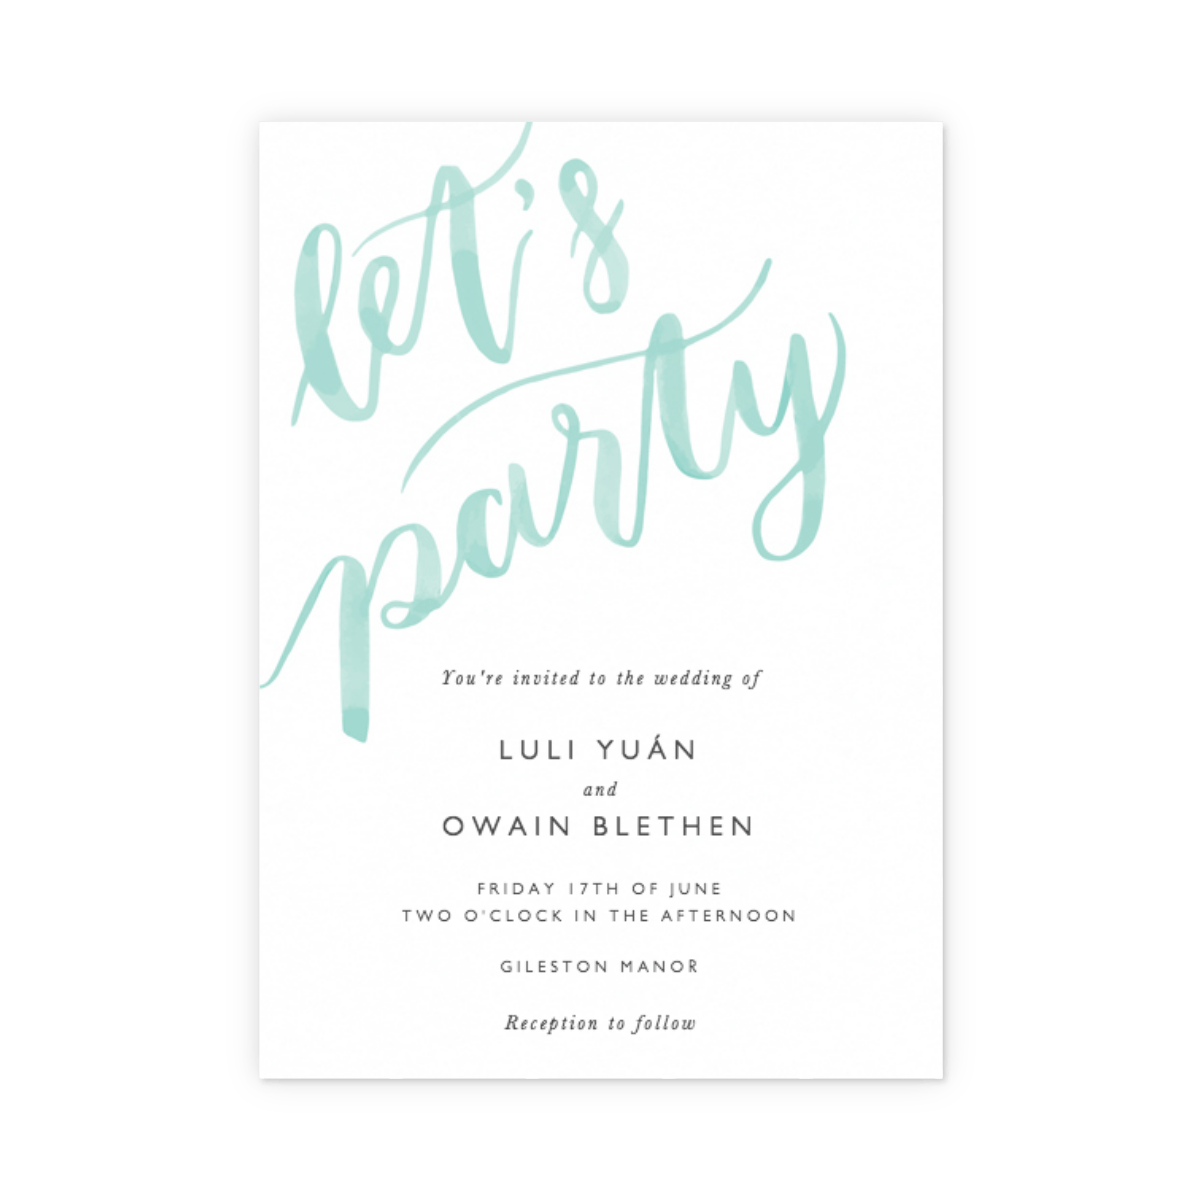 Https%3a%2f%2fwww.papier.com%2fproduct image%2f53889%2f4%2fbrush lettering turquoise 12978 front 1549892313.png?ixlib=rb 1.1